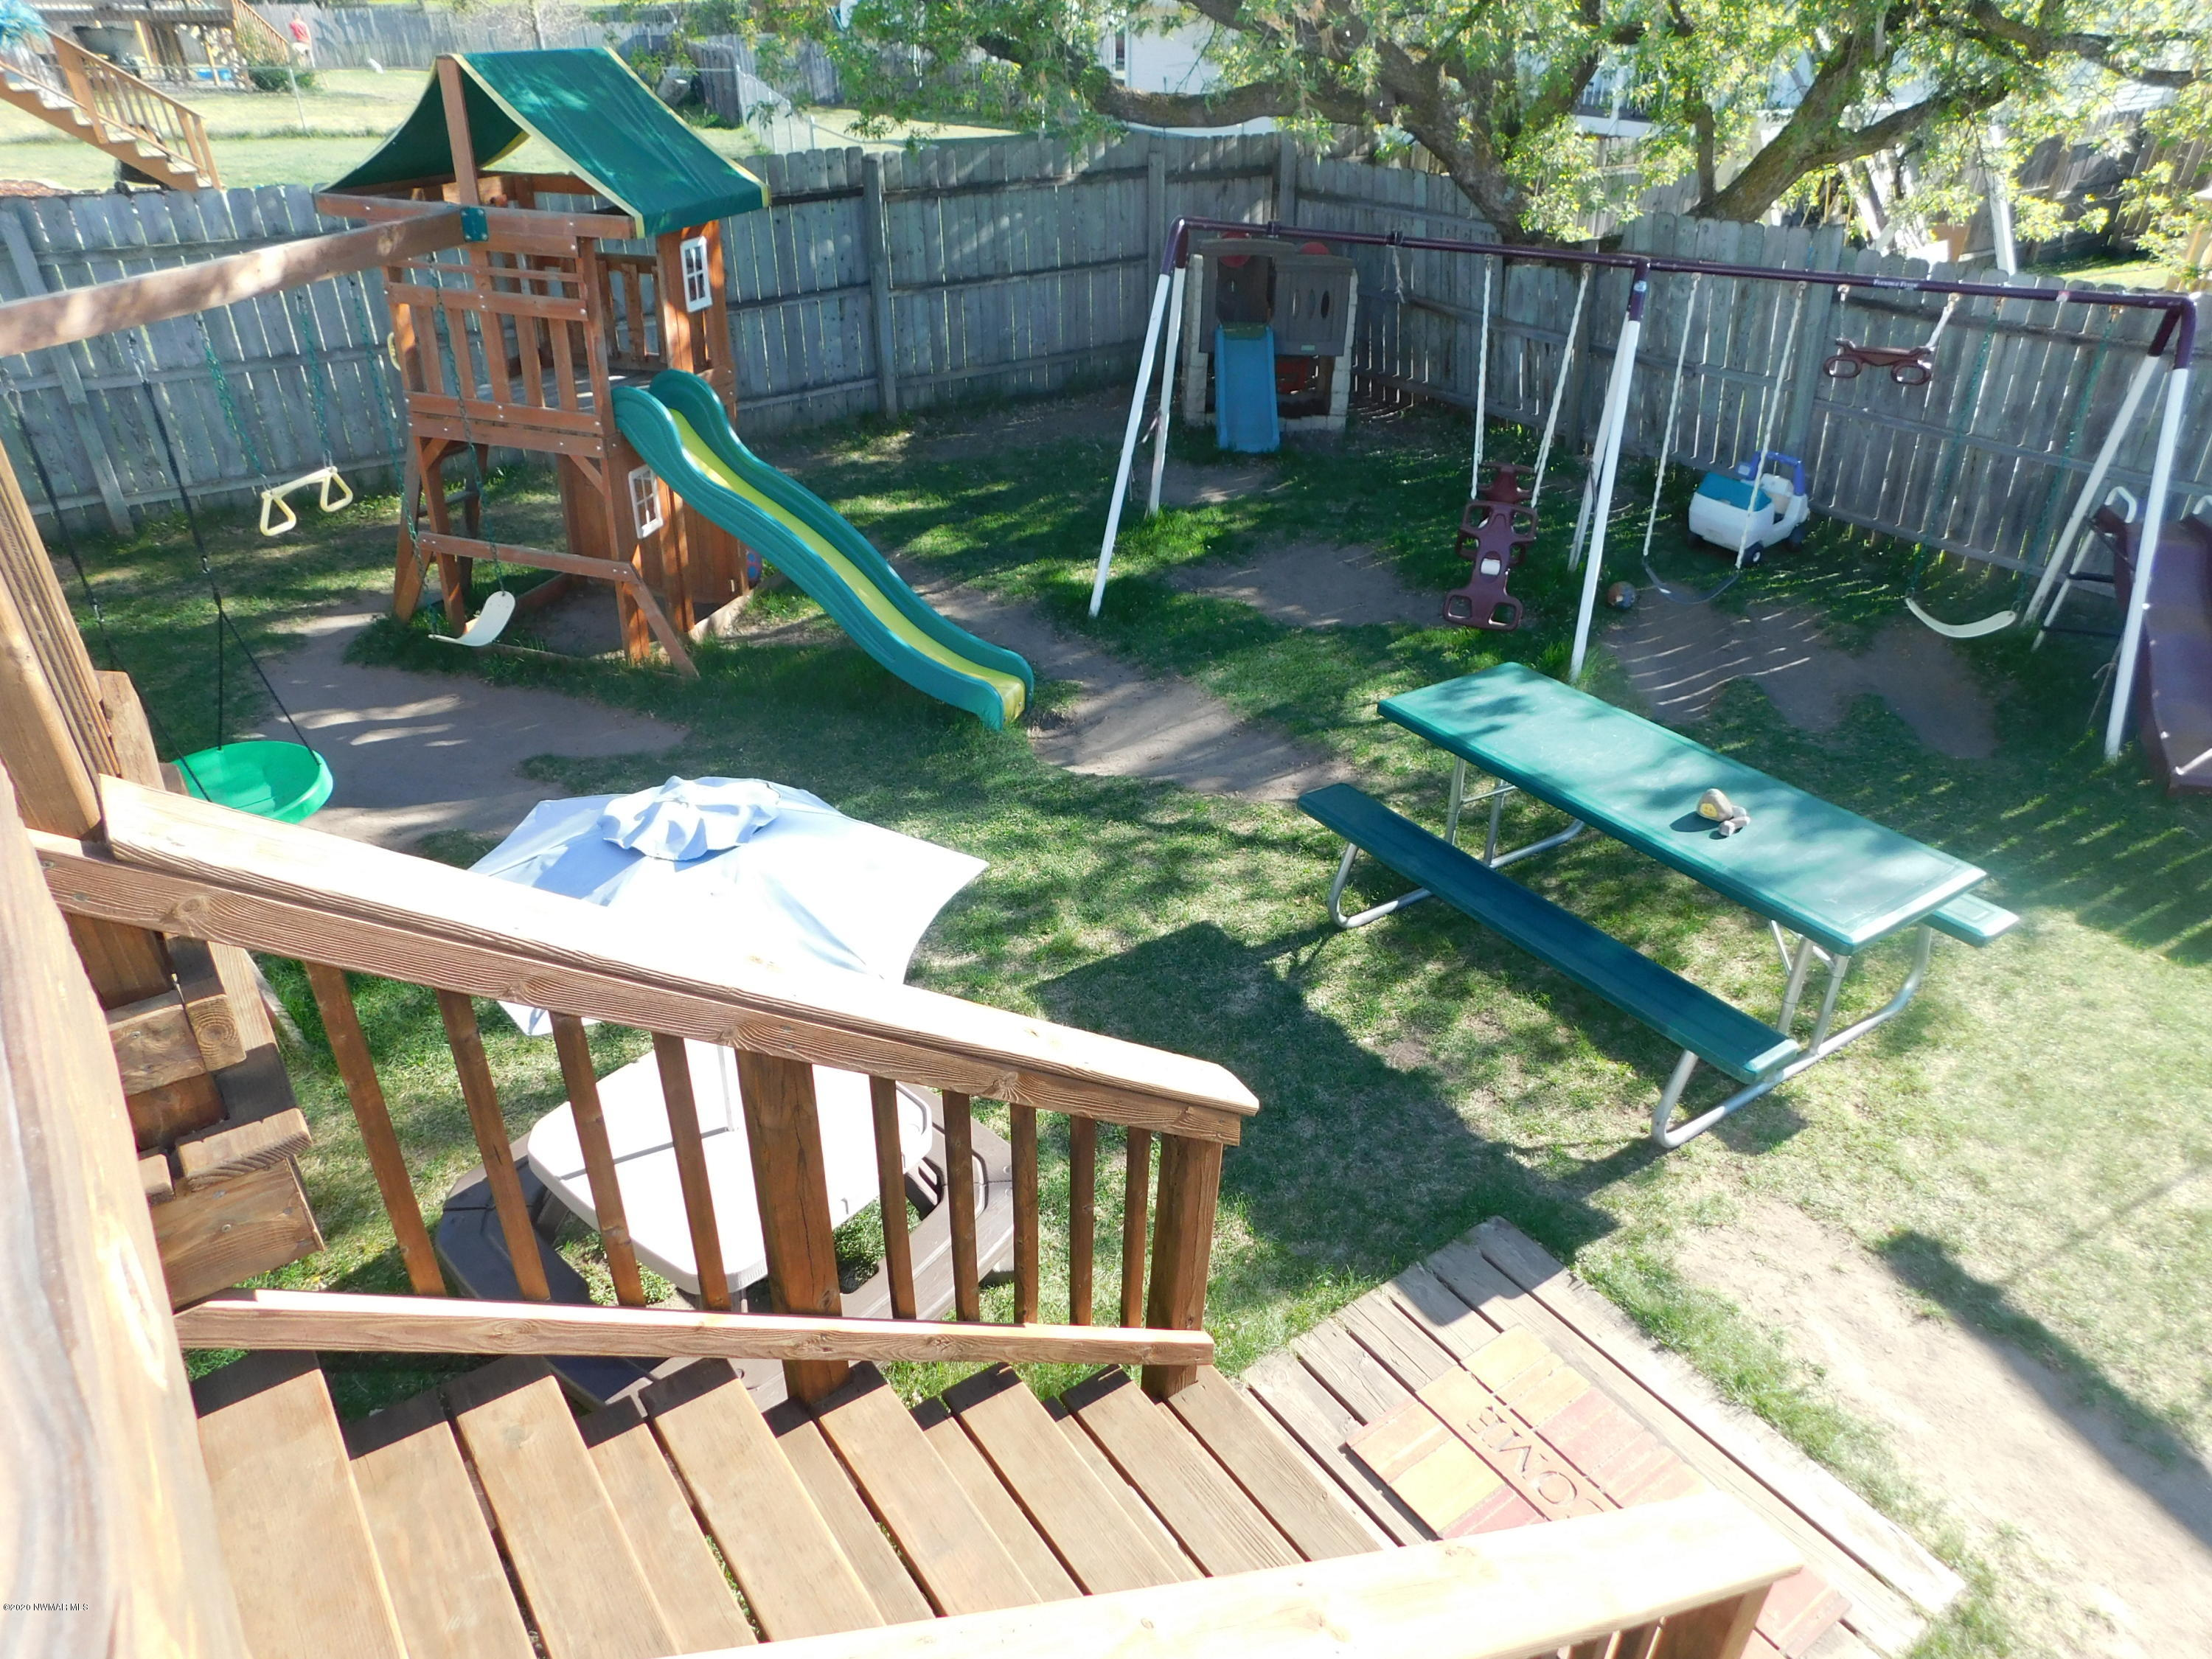 Inside the fenced in Back yard is a fantastic playground.